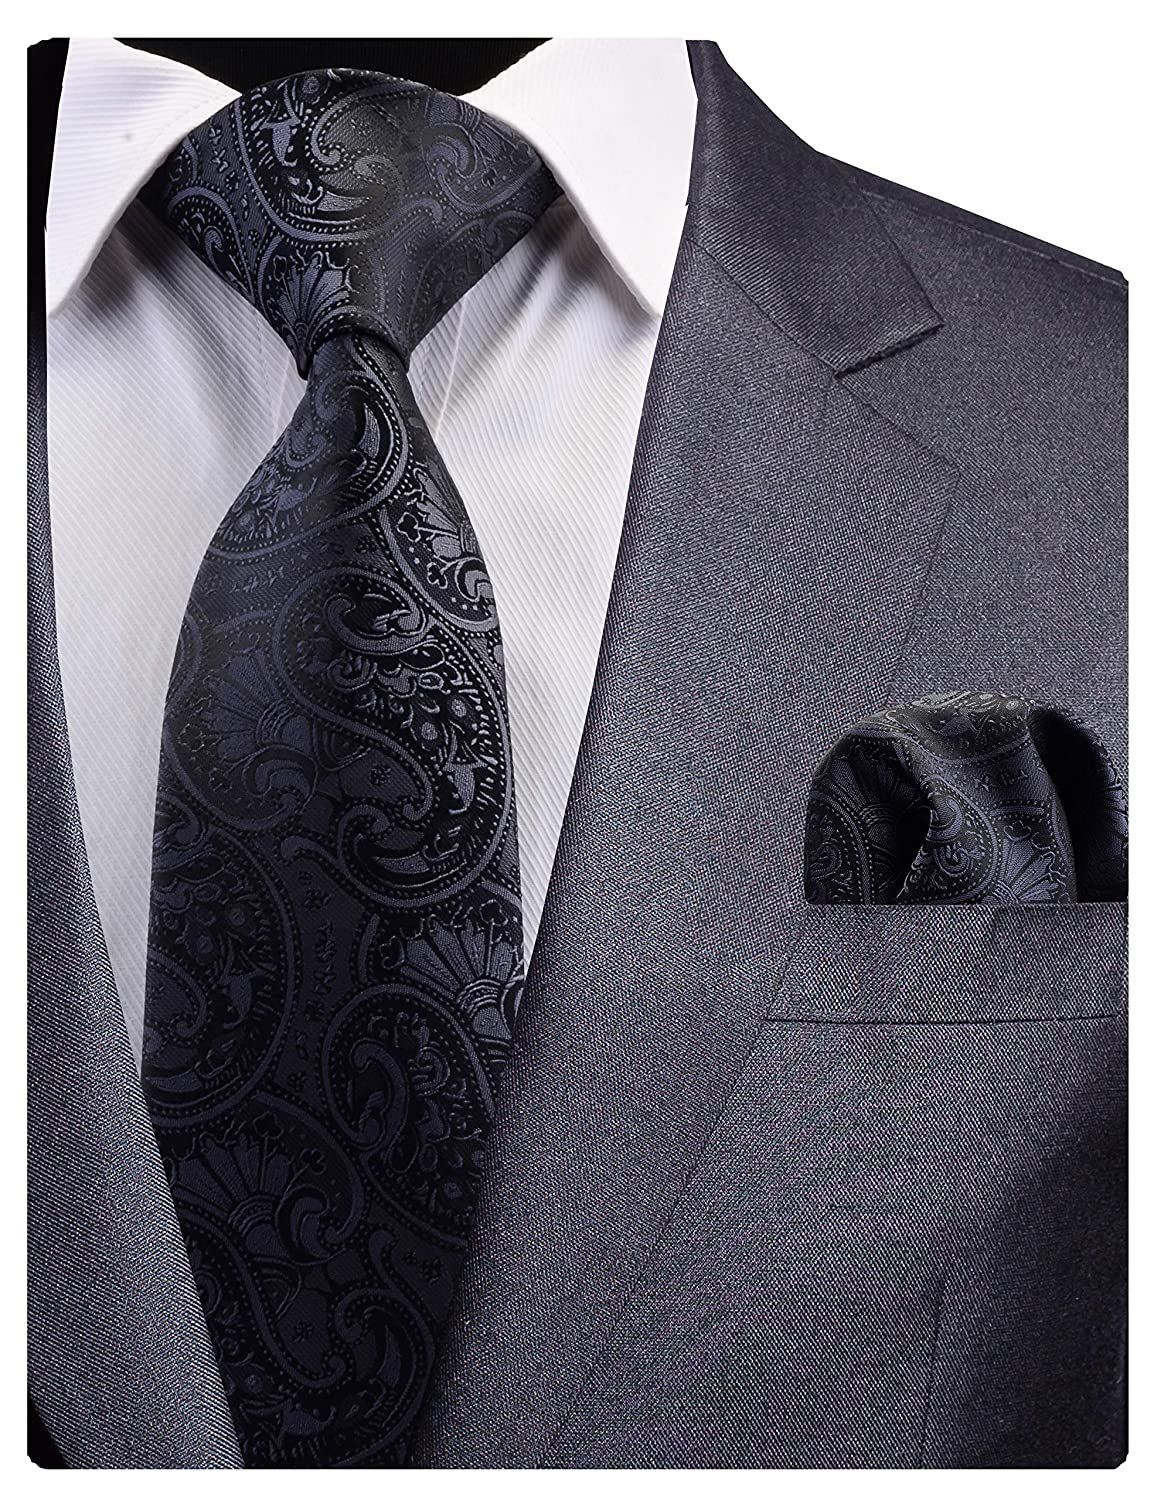 f66dcabeb4dfd GUSLESON New Black Paisley Tie for Men Silk Wedding Necktie and Pocket  Square Set (0783-16) at Amazon Men s Clothing store